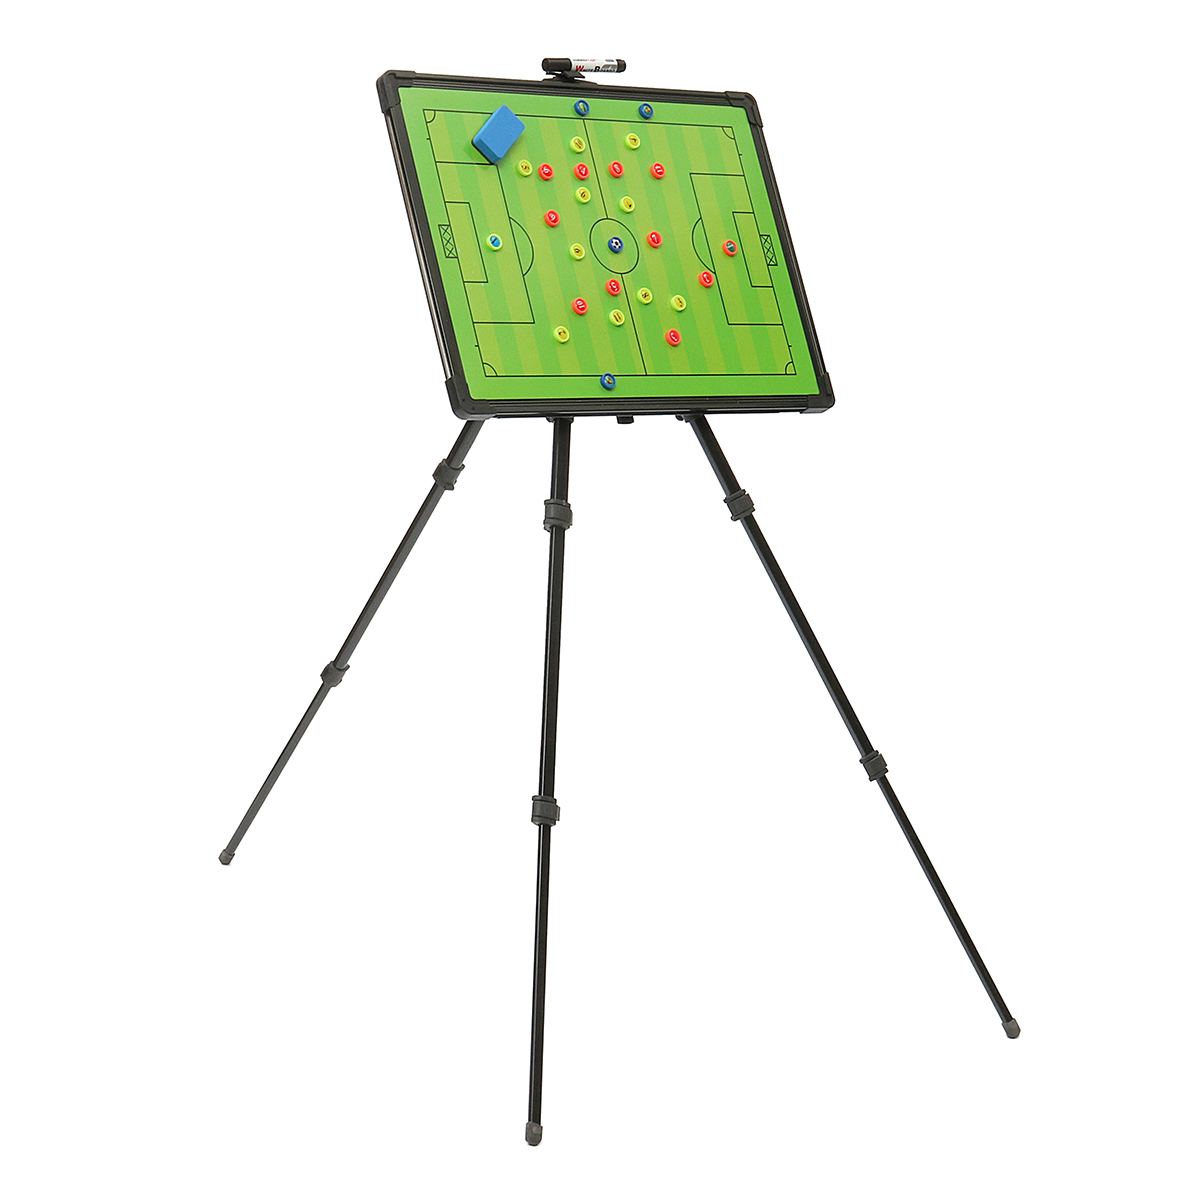 Professional Football Tactical Coaching Board 60x45cm Training Guidance Magnetic w/ Tripod Stainless Steel+PVC Convenient greg bach coaching football for dummies